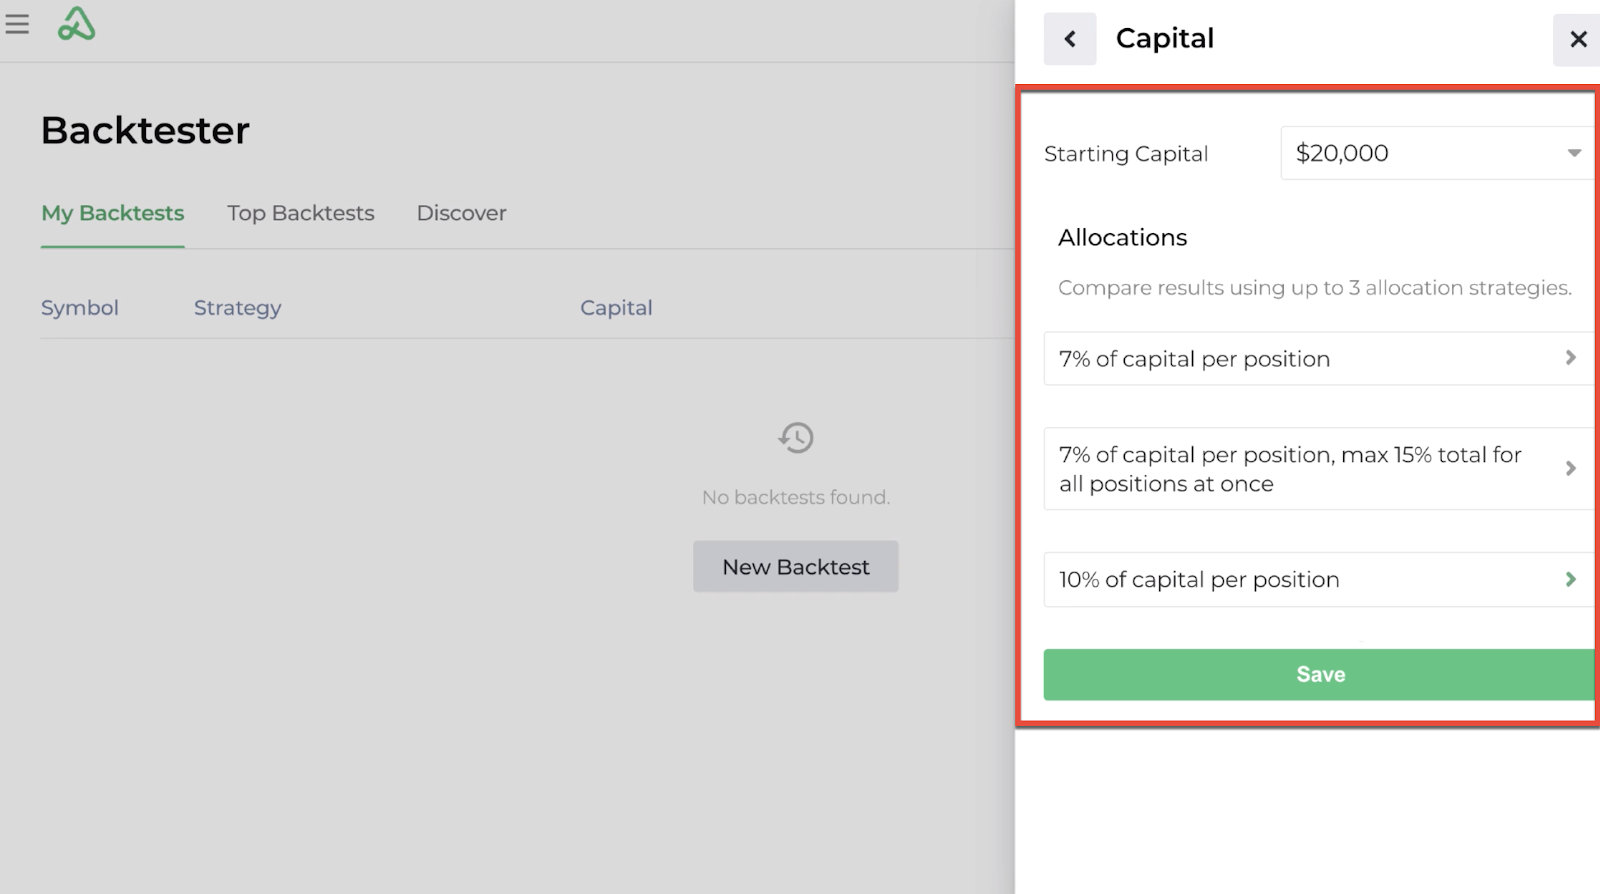 Screenshot highlighting the capital allocation options available for a new backtest